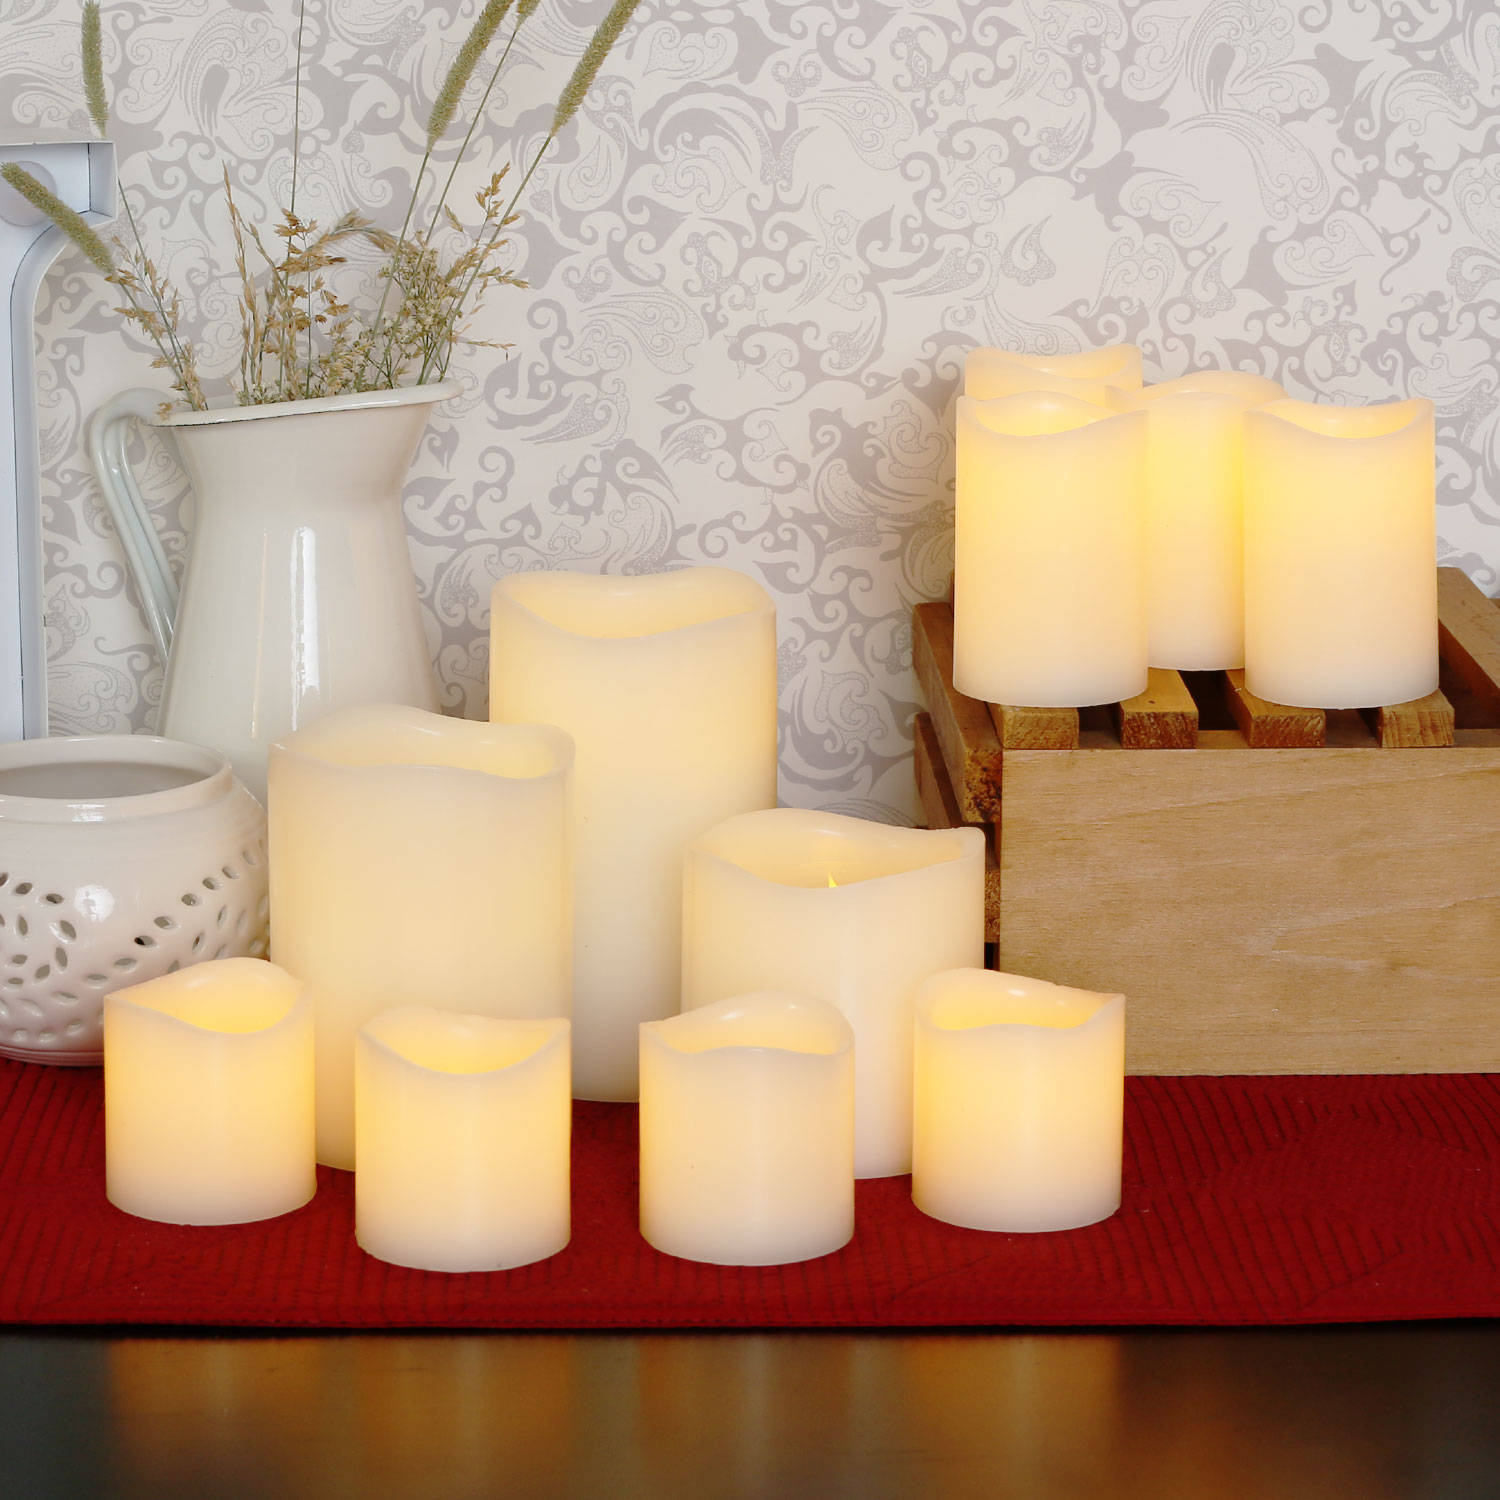 Lit Decor Flameless Candles Pillars Melted Edge Flameless Wax 11 Candle